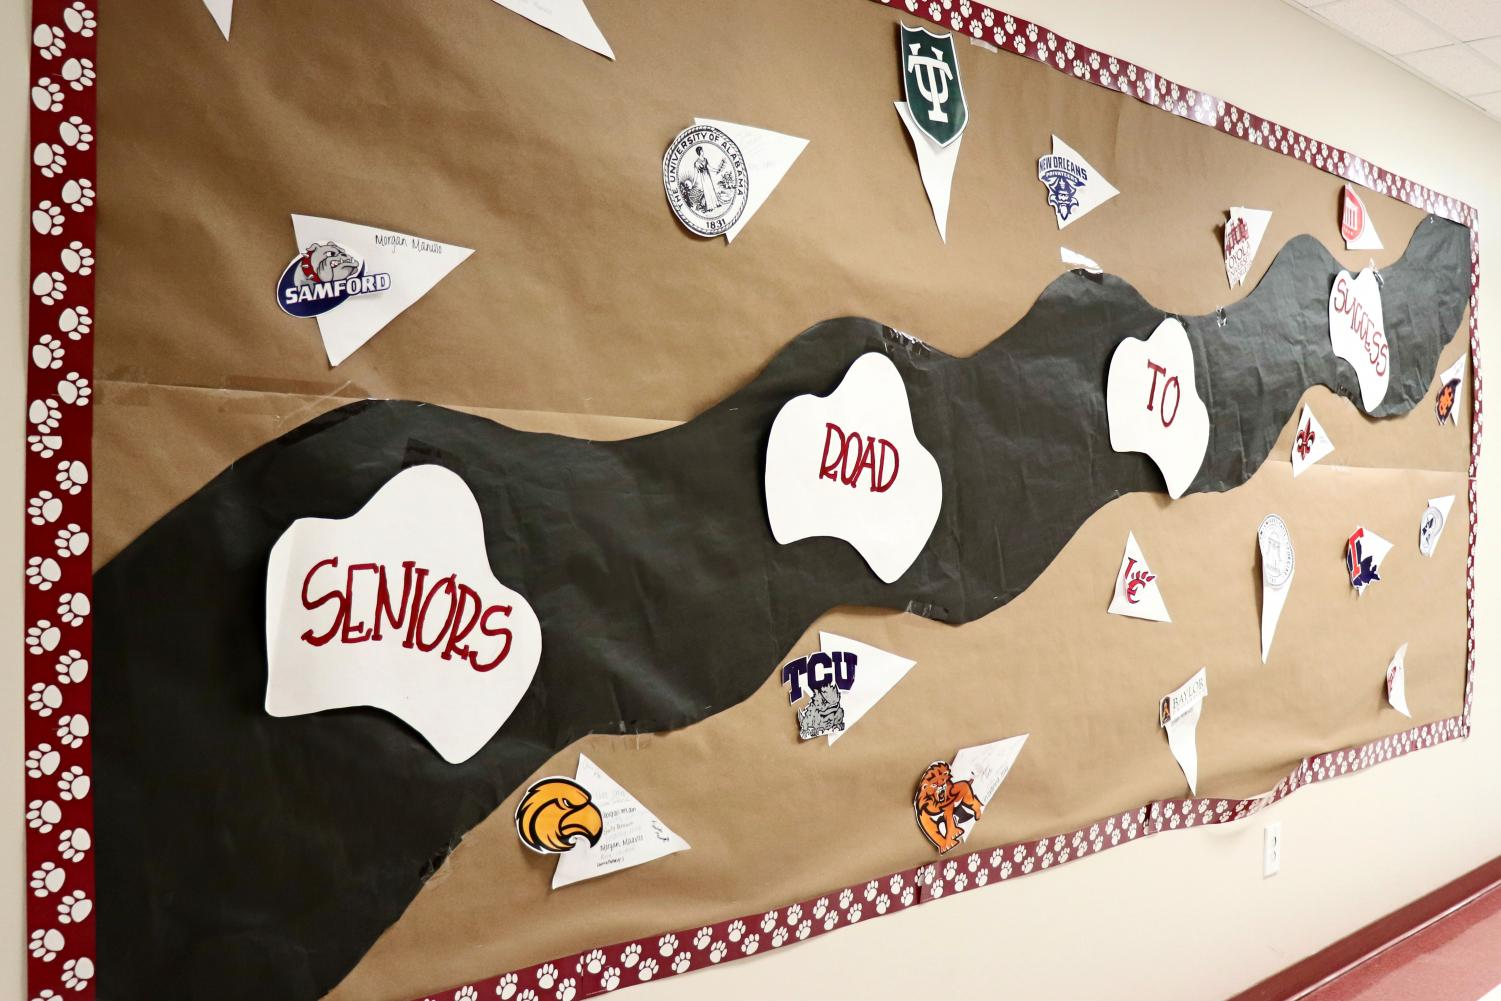 Northlake displays colleges seniors have been accepted to so far in the main hall.